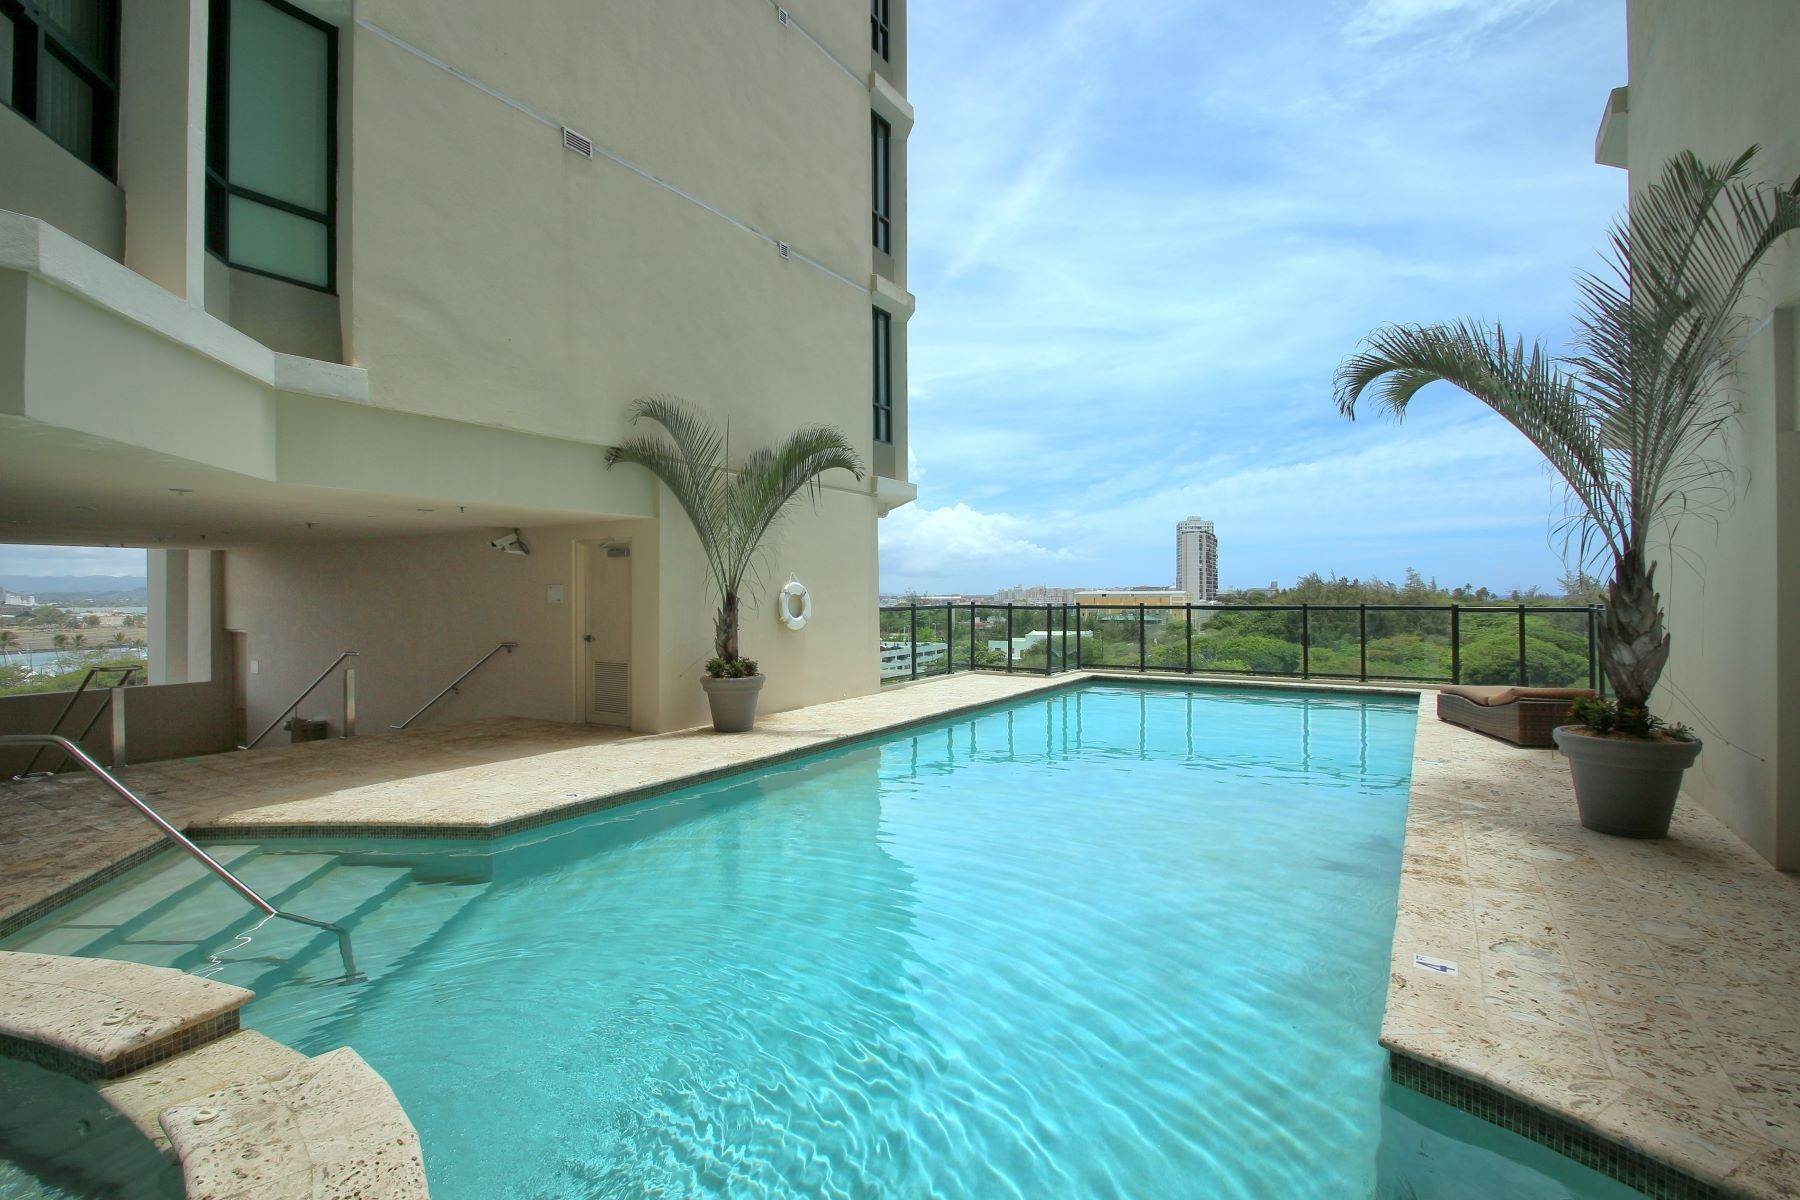 19. Condominiums for Sale at Exquisite Modern Residence in Caribe Plaza 35 Munoz Rivera Ave., Apt. 1202 San Juan, 00907 Puerto Rico